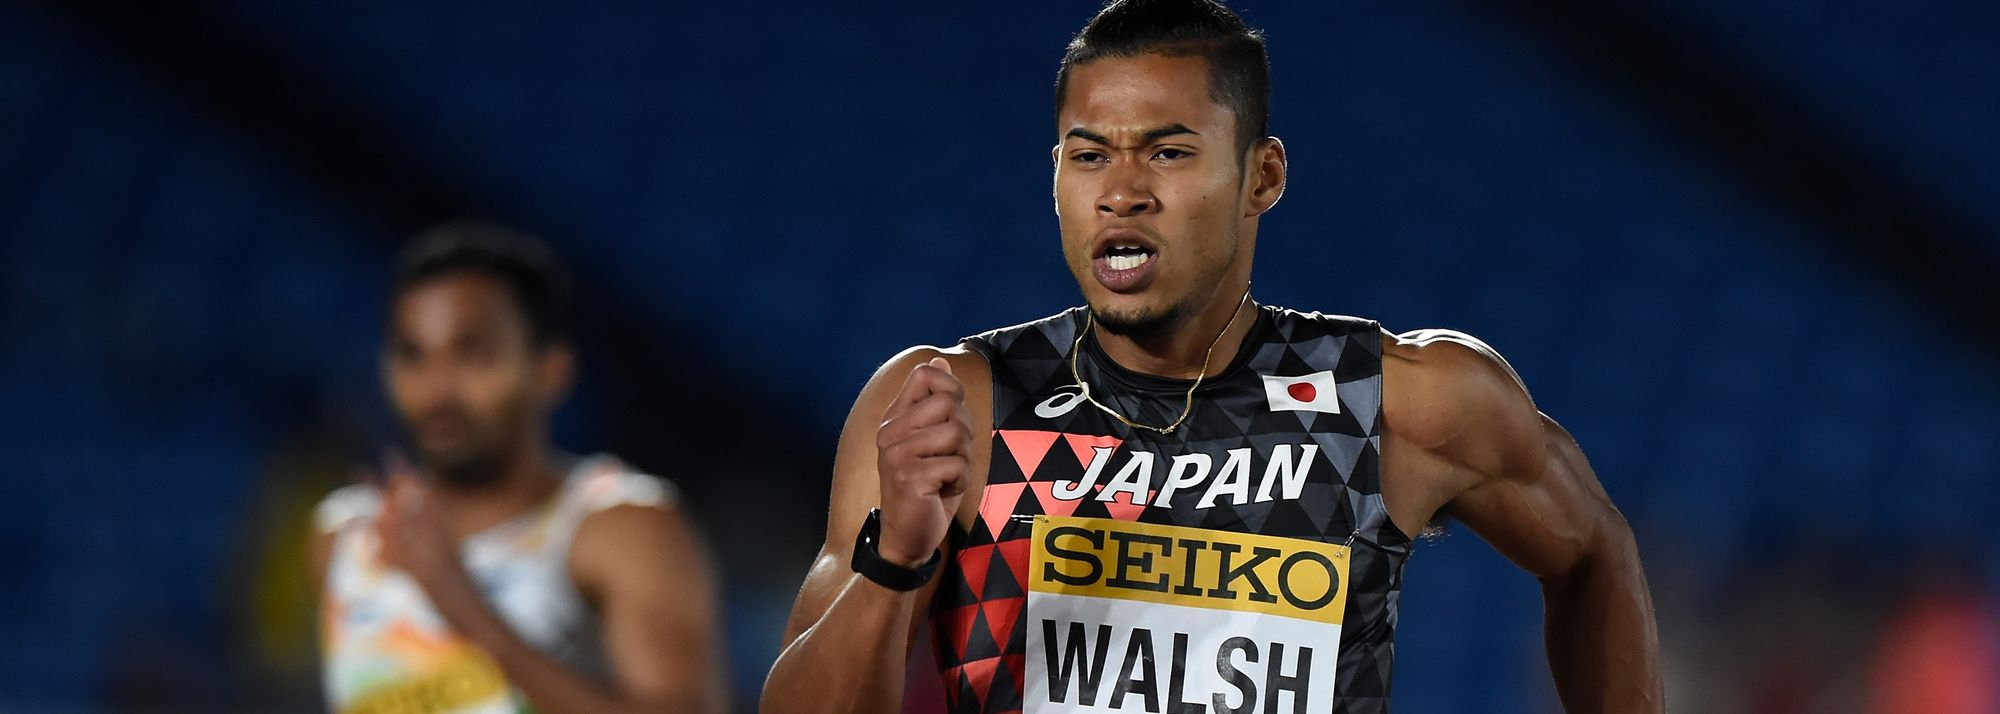 Japan has selected a youthful team of 23 athletes to compete at the World Athletics Relays Silesia 21 on 1-2 May.